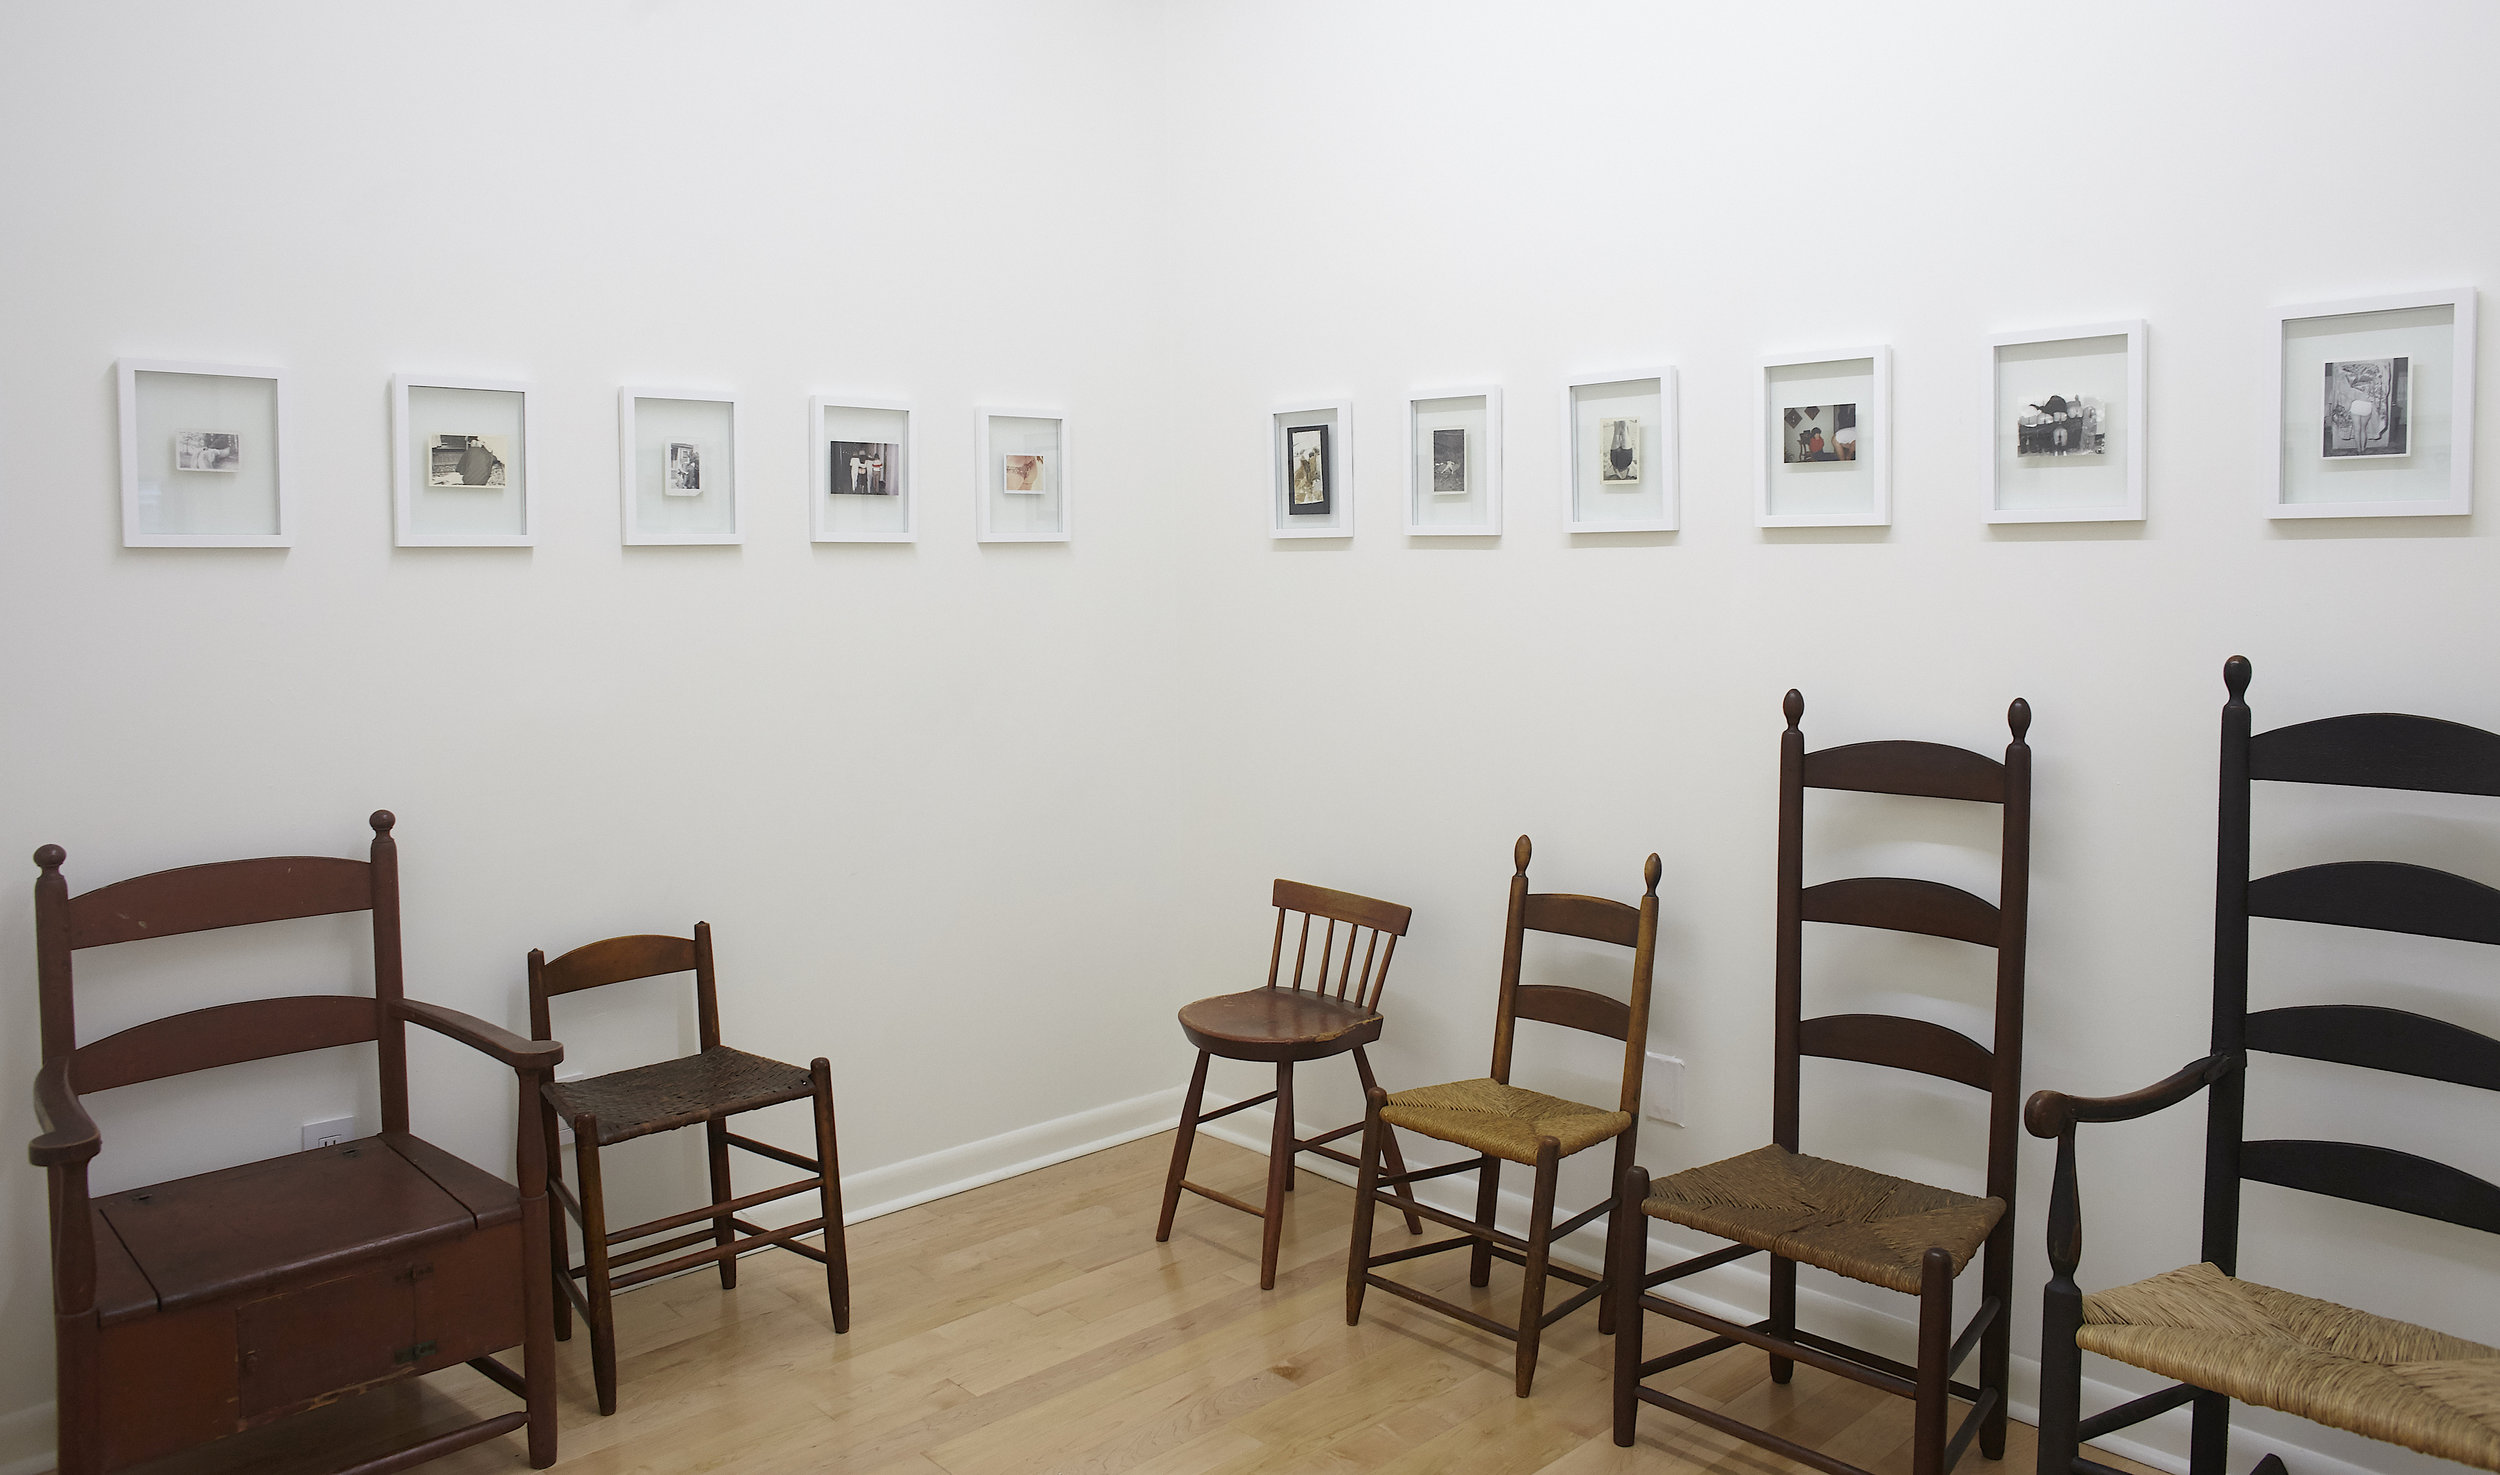 JOHN PHELAN ,  Seats and Chairs , Project Space Installation View